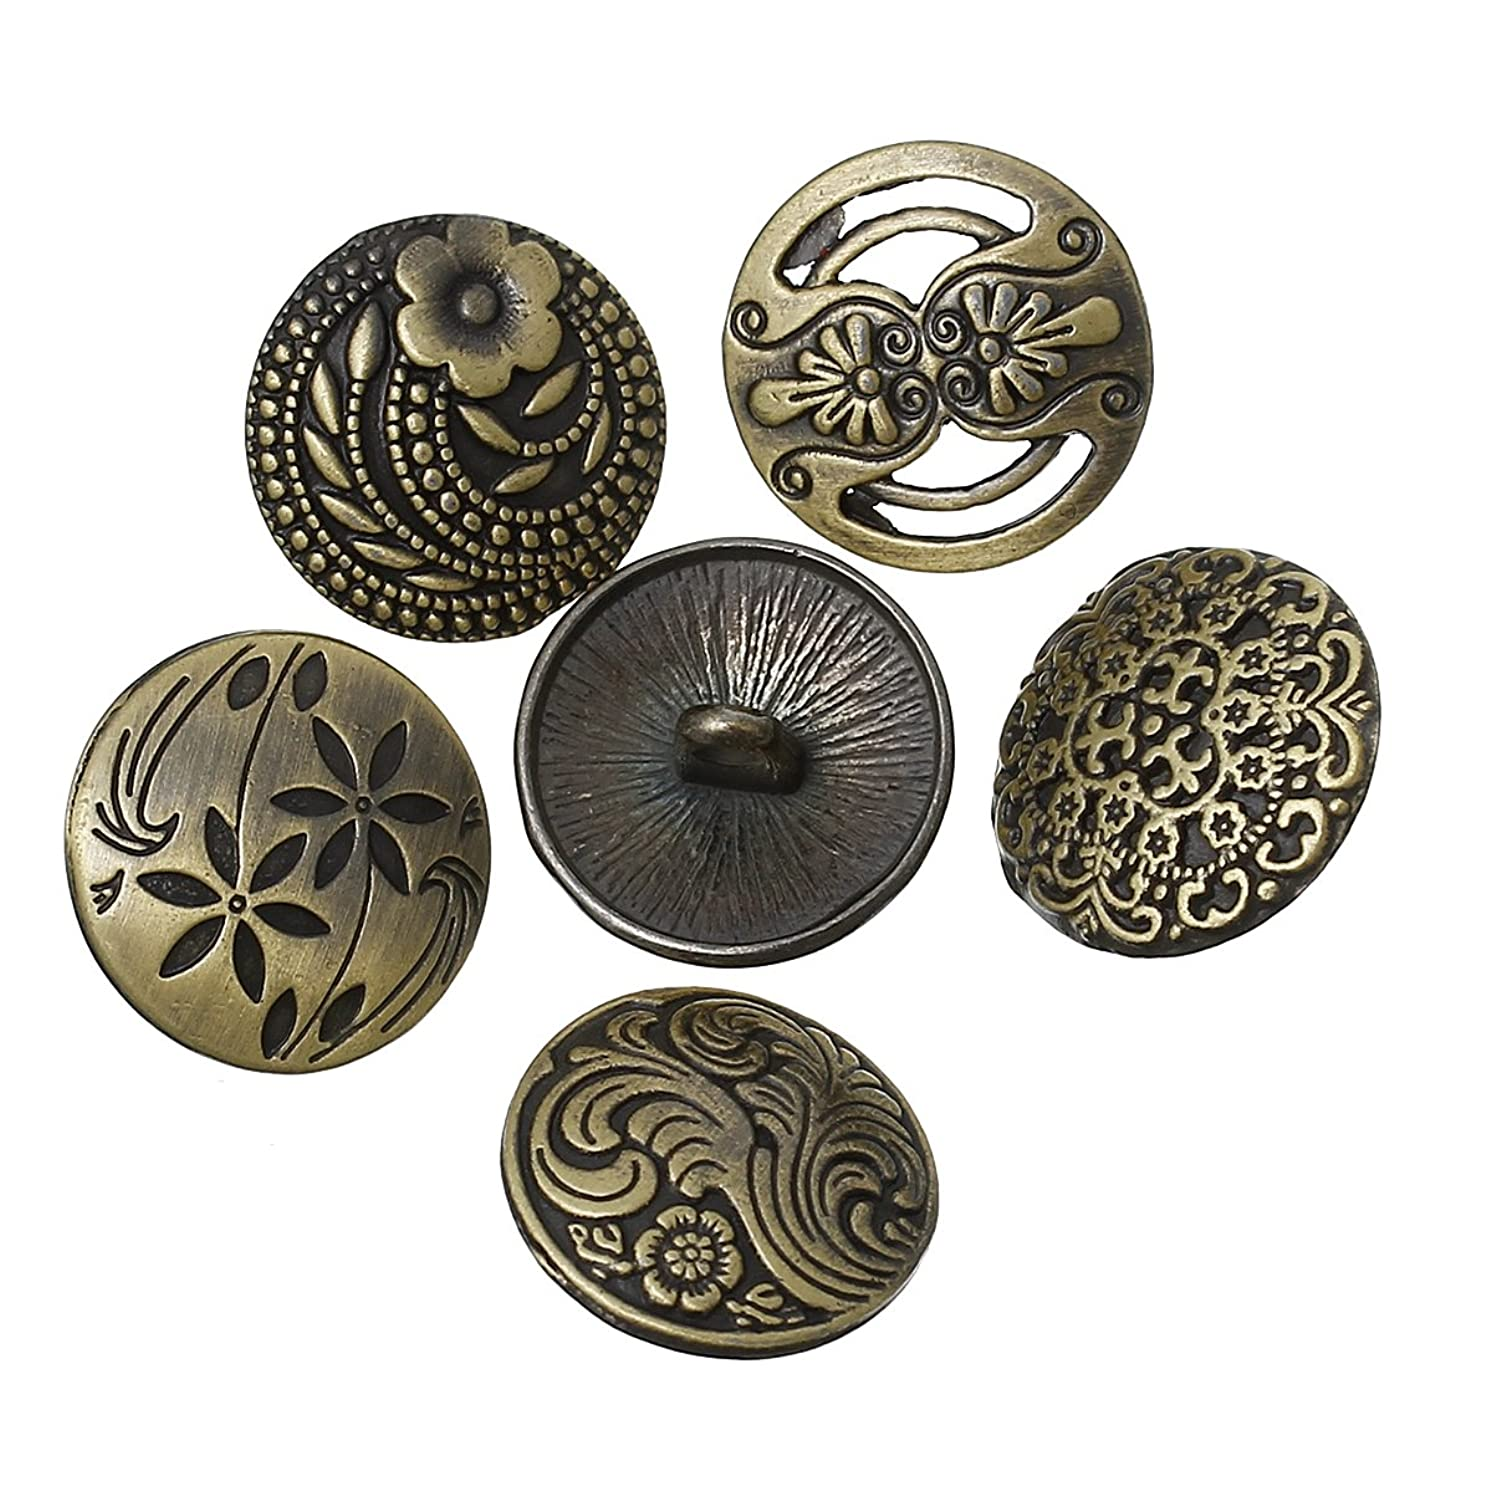 PEPPERLONELY Brand 10PC Antique Bronze Sewing Metal Buttons Round Flower Pattern Carved 17mm